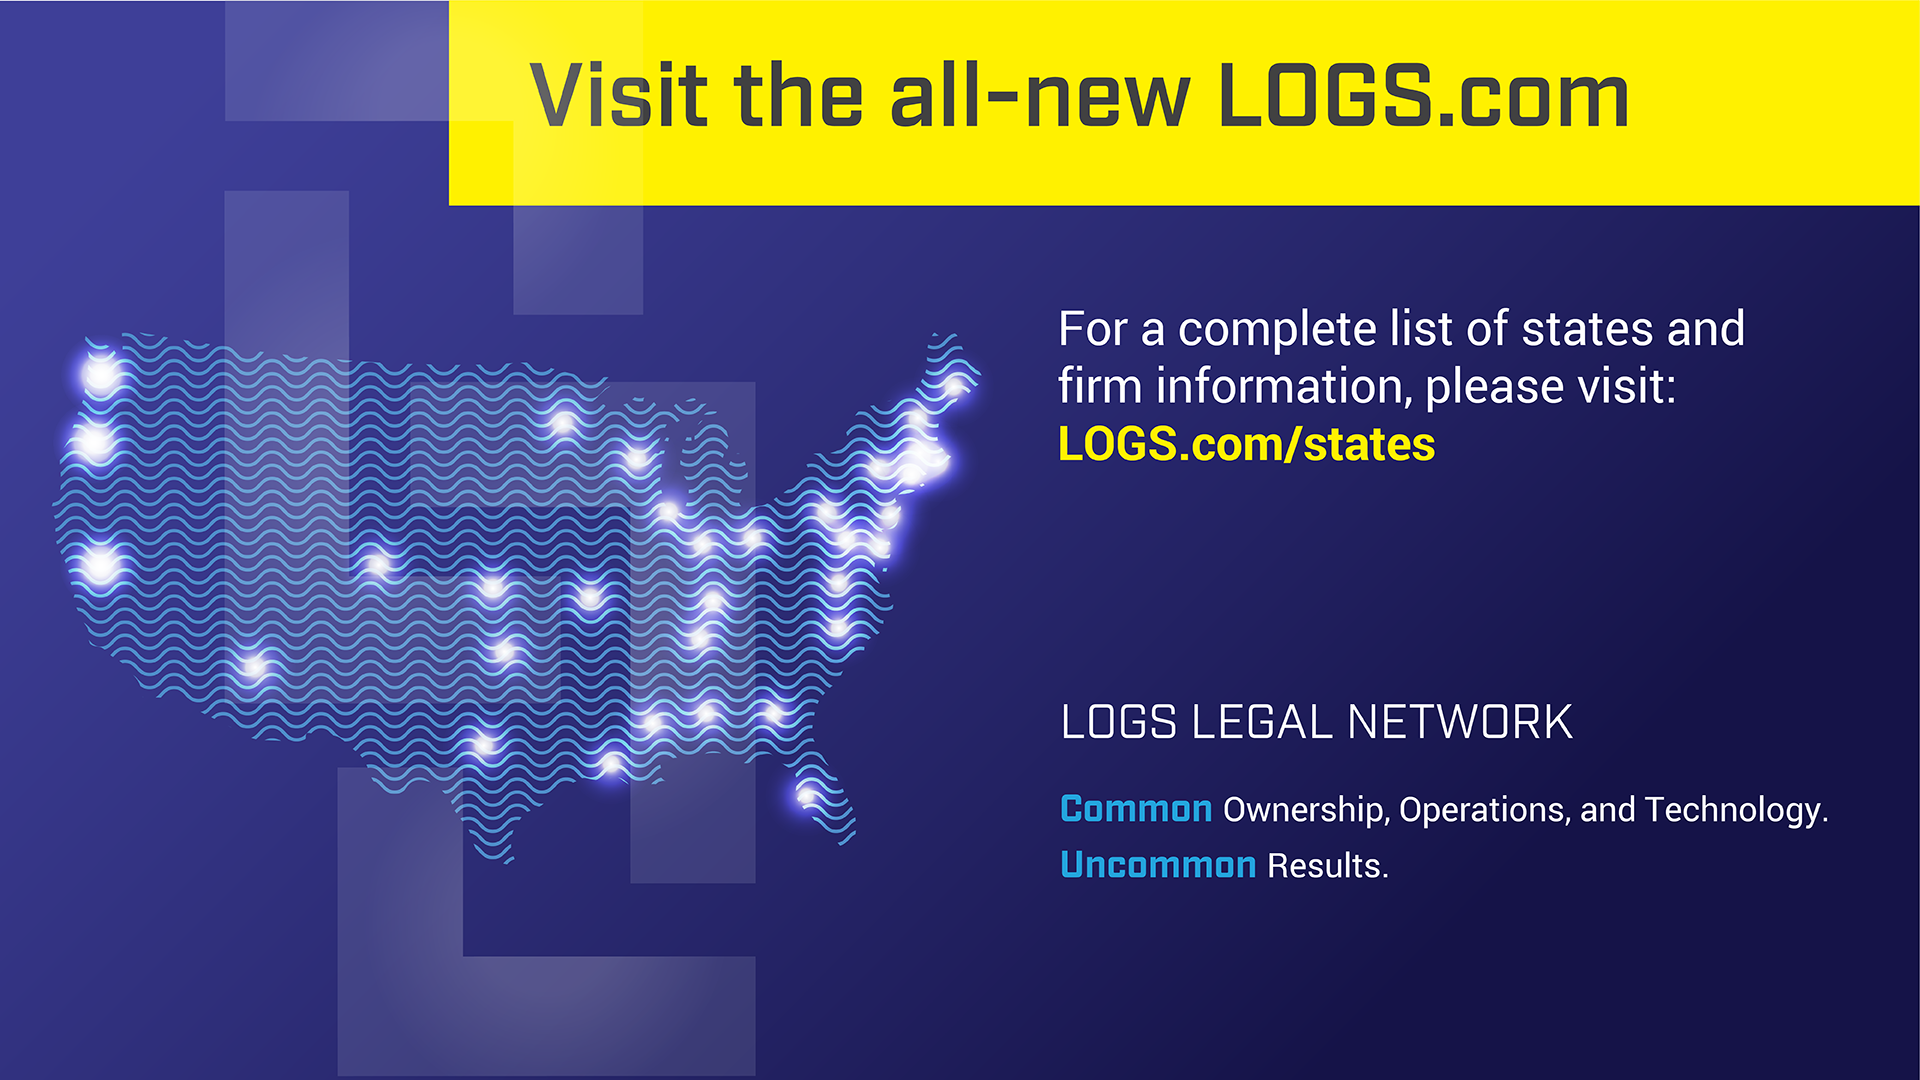 Go to logs.com